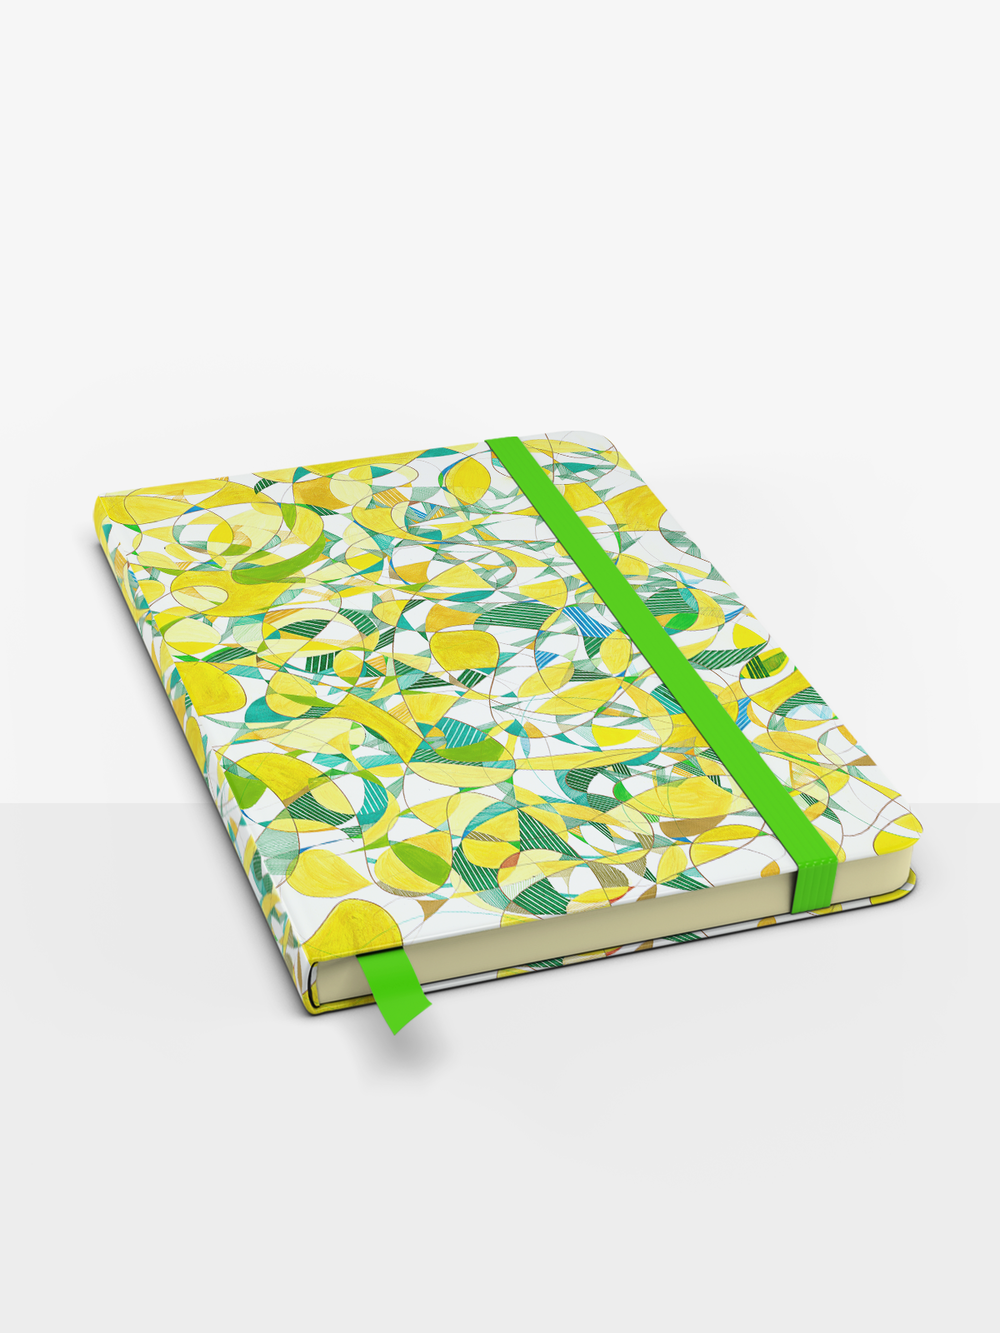 NOTEBOOK-web-image-middle-01.png